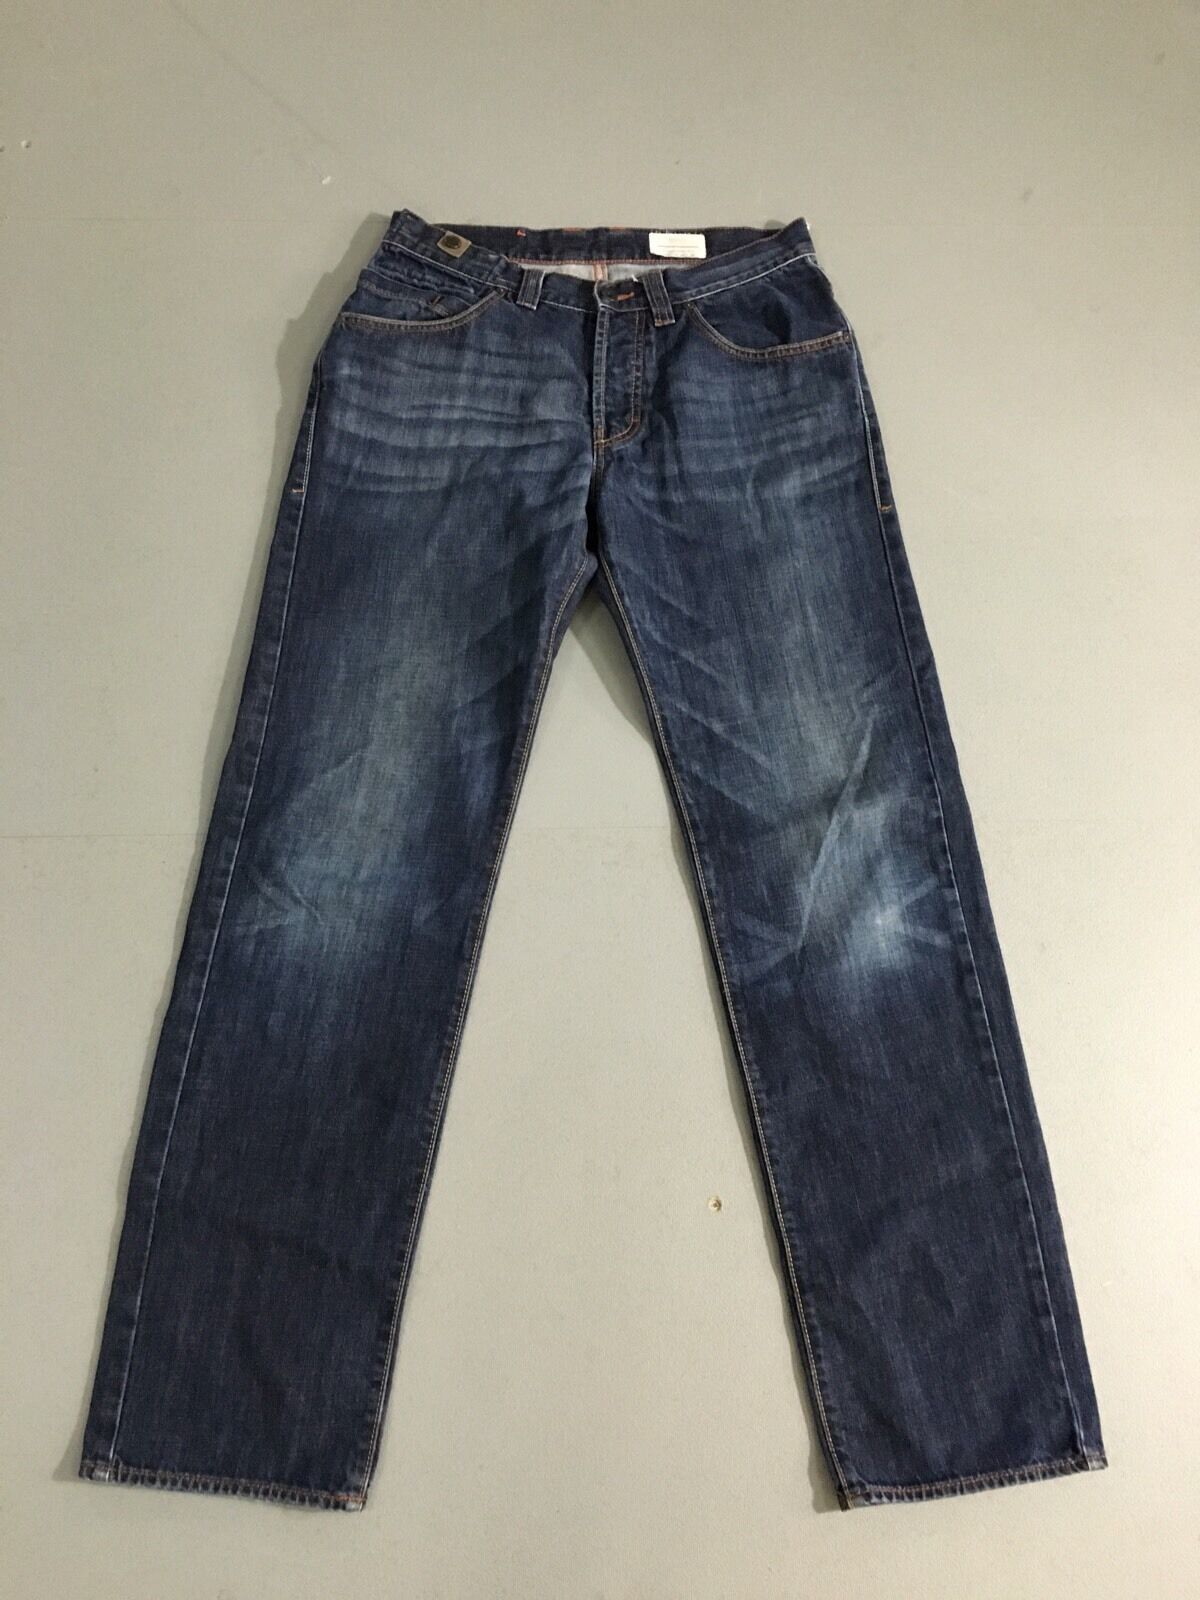 Mens HUGO BOSS 'Comfort Fit' Jeans - W32 L34 - Dark Navy Wash - Great Condition